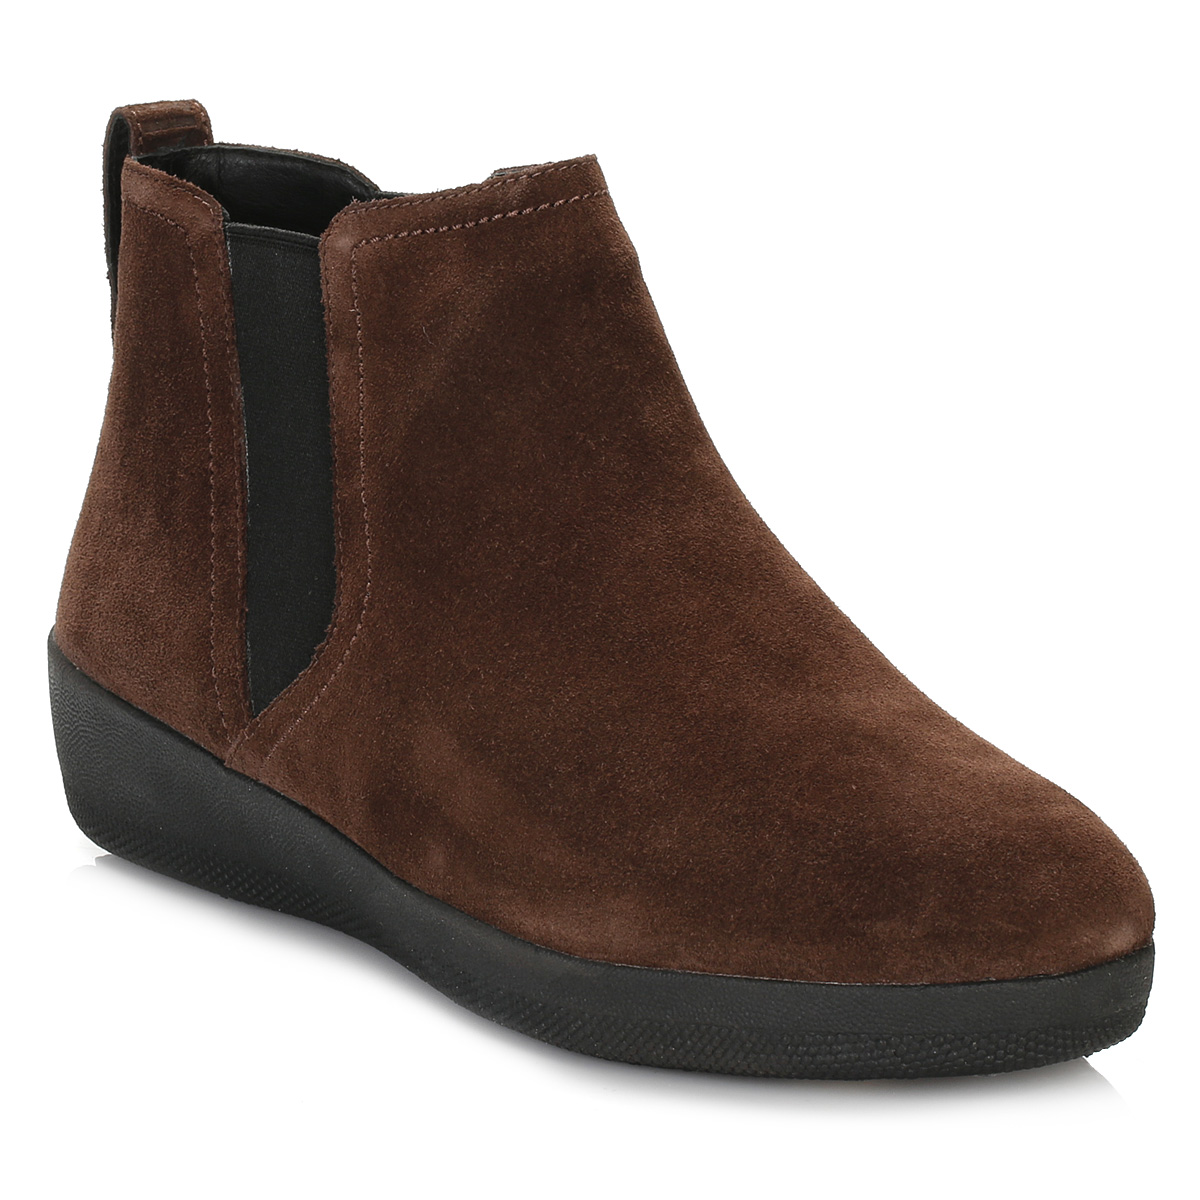 Unique Dark Brown Leather Ankle Boots  Boot Yc